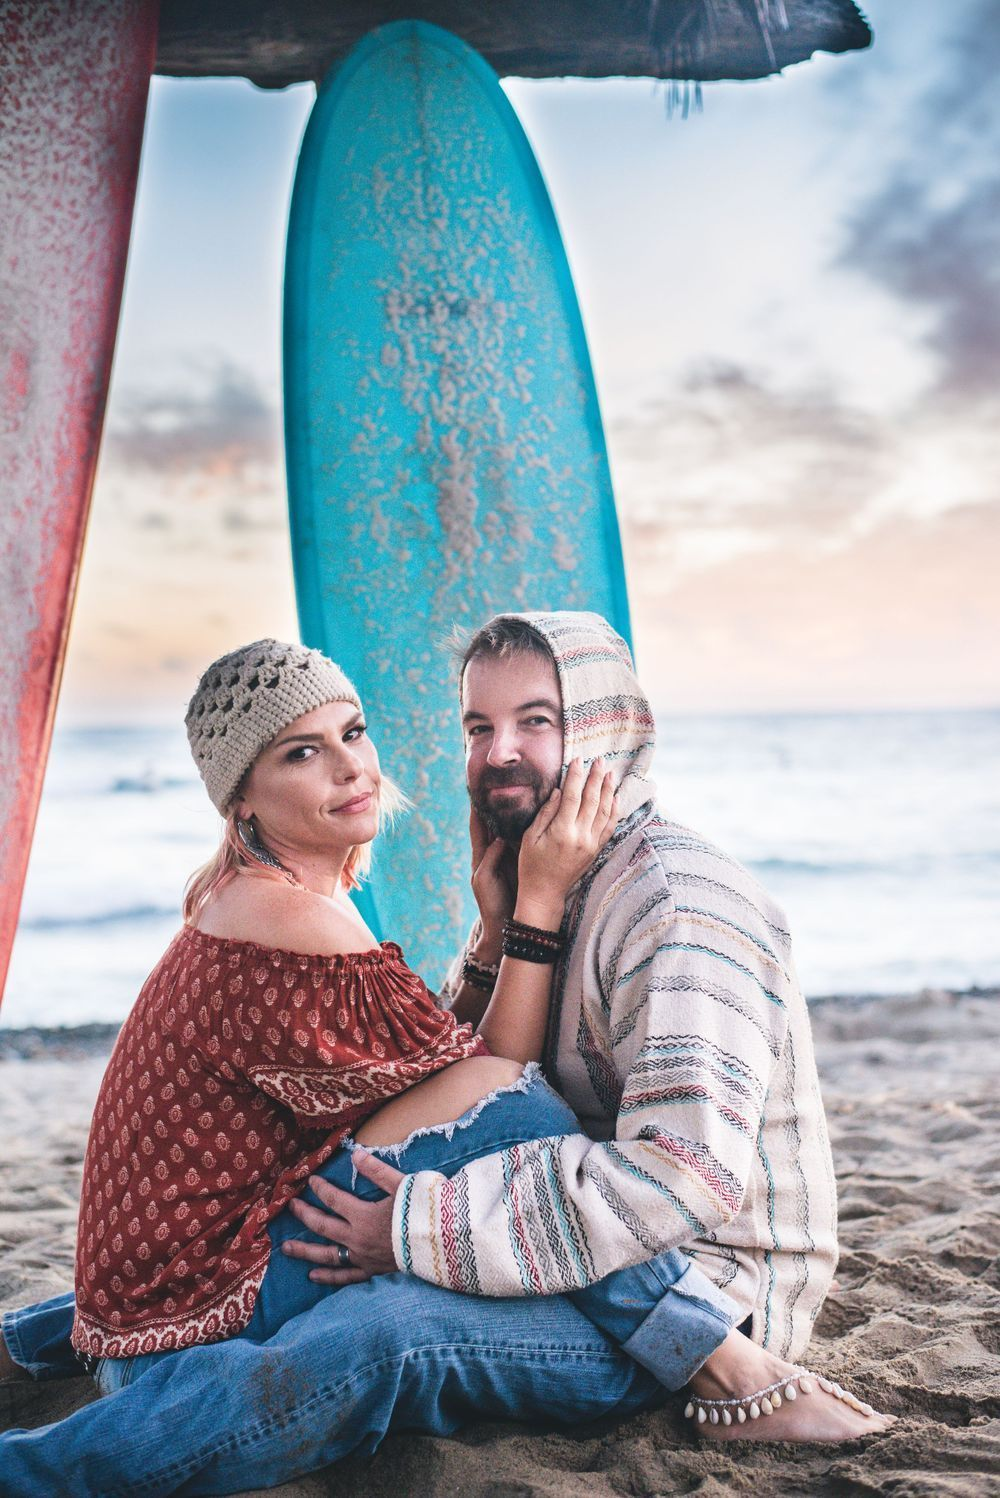 Photo of a husband and wife on the beach with surfboards in San Clemente, CA